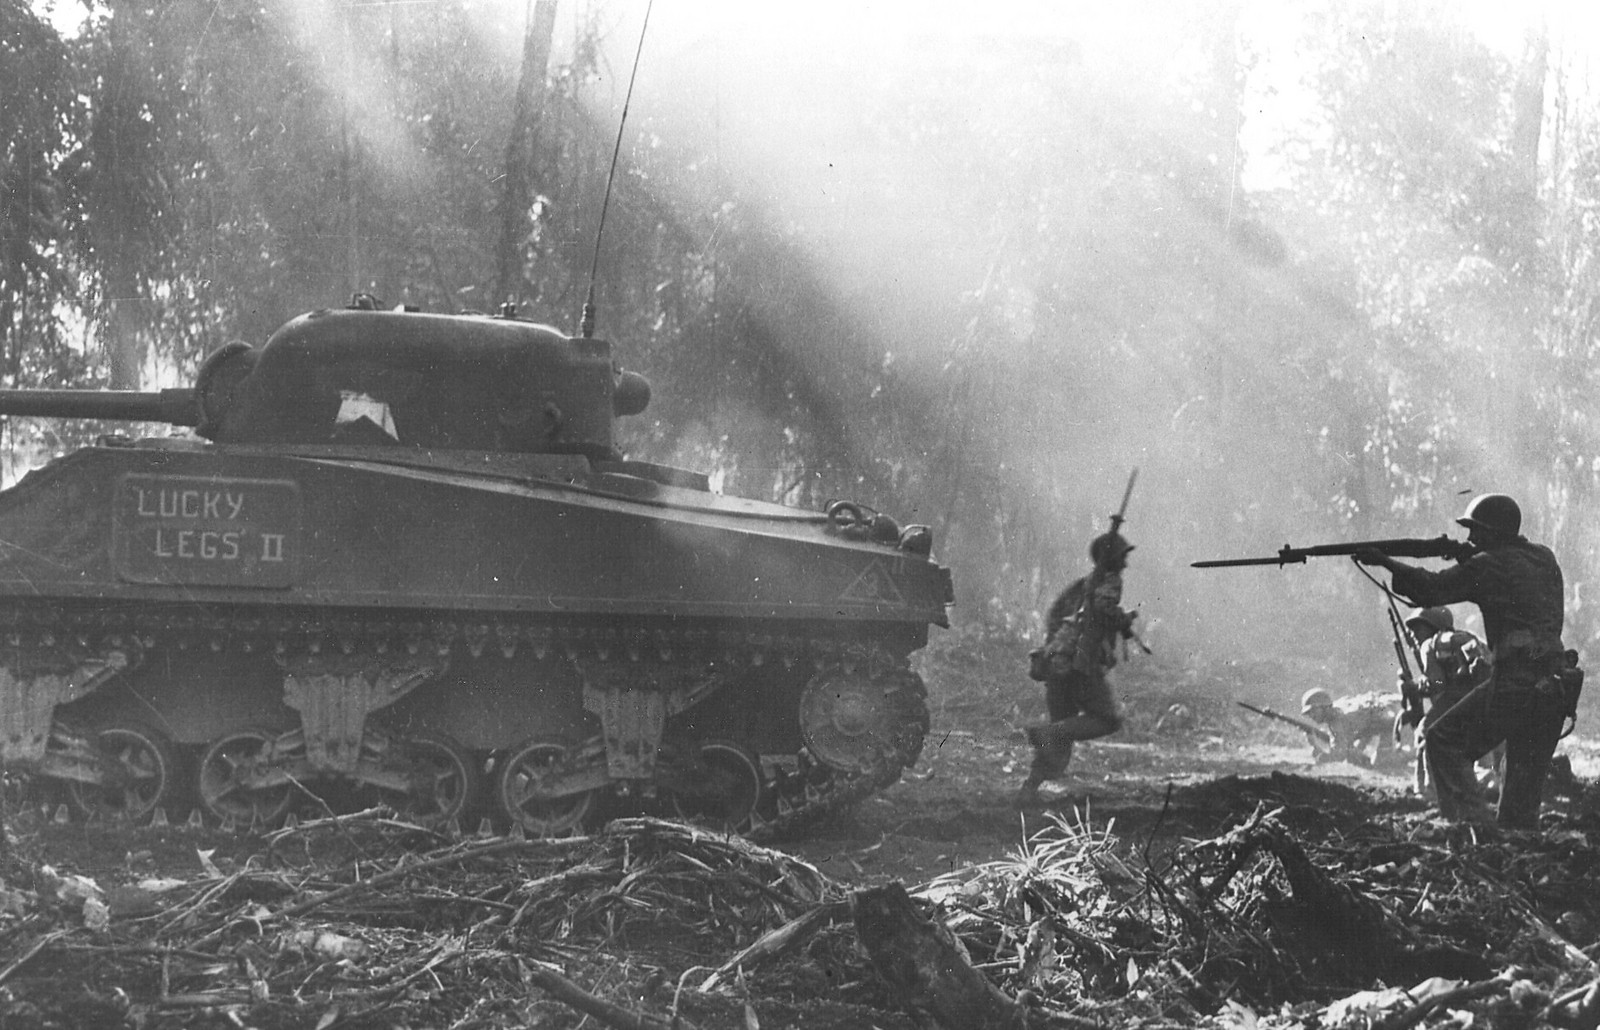 Tank-inf at Bougainville MAR44-X3